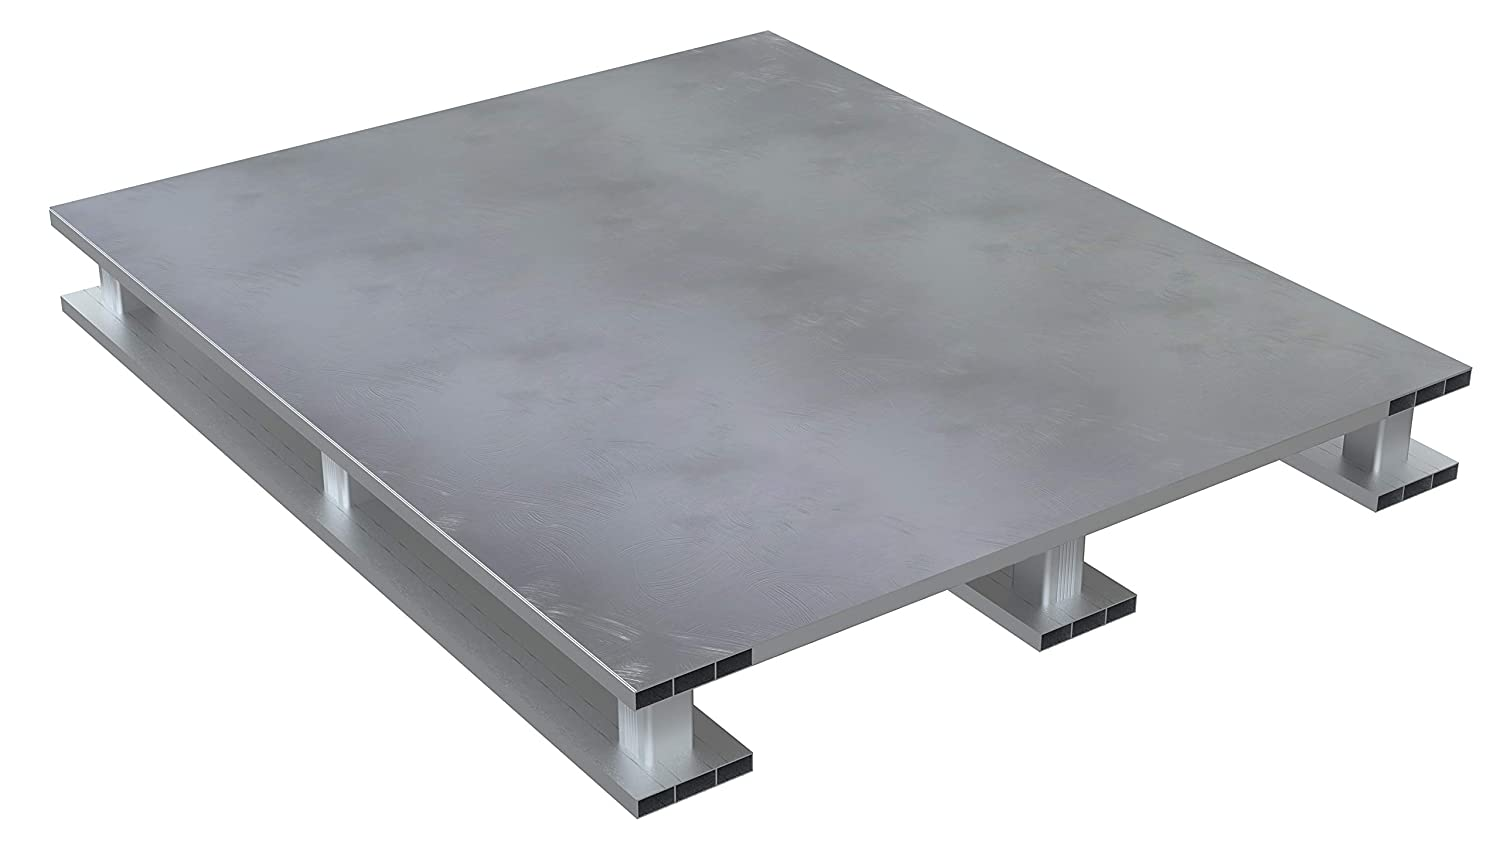 Vestil Heavy sold out Duty Aluminum Pallet Top Bottom 42X48 New product Solid Skid